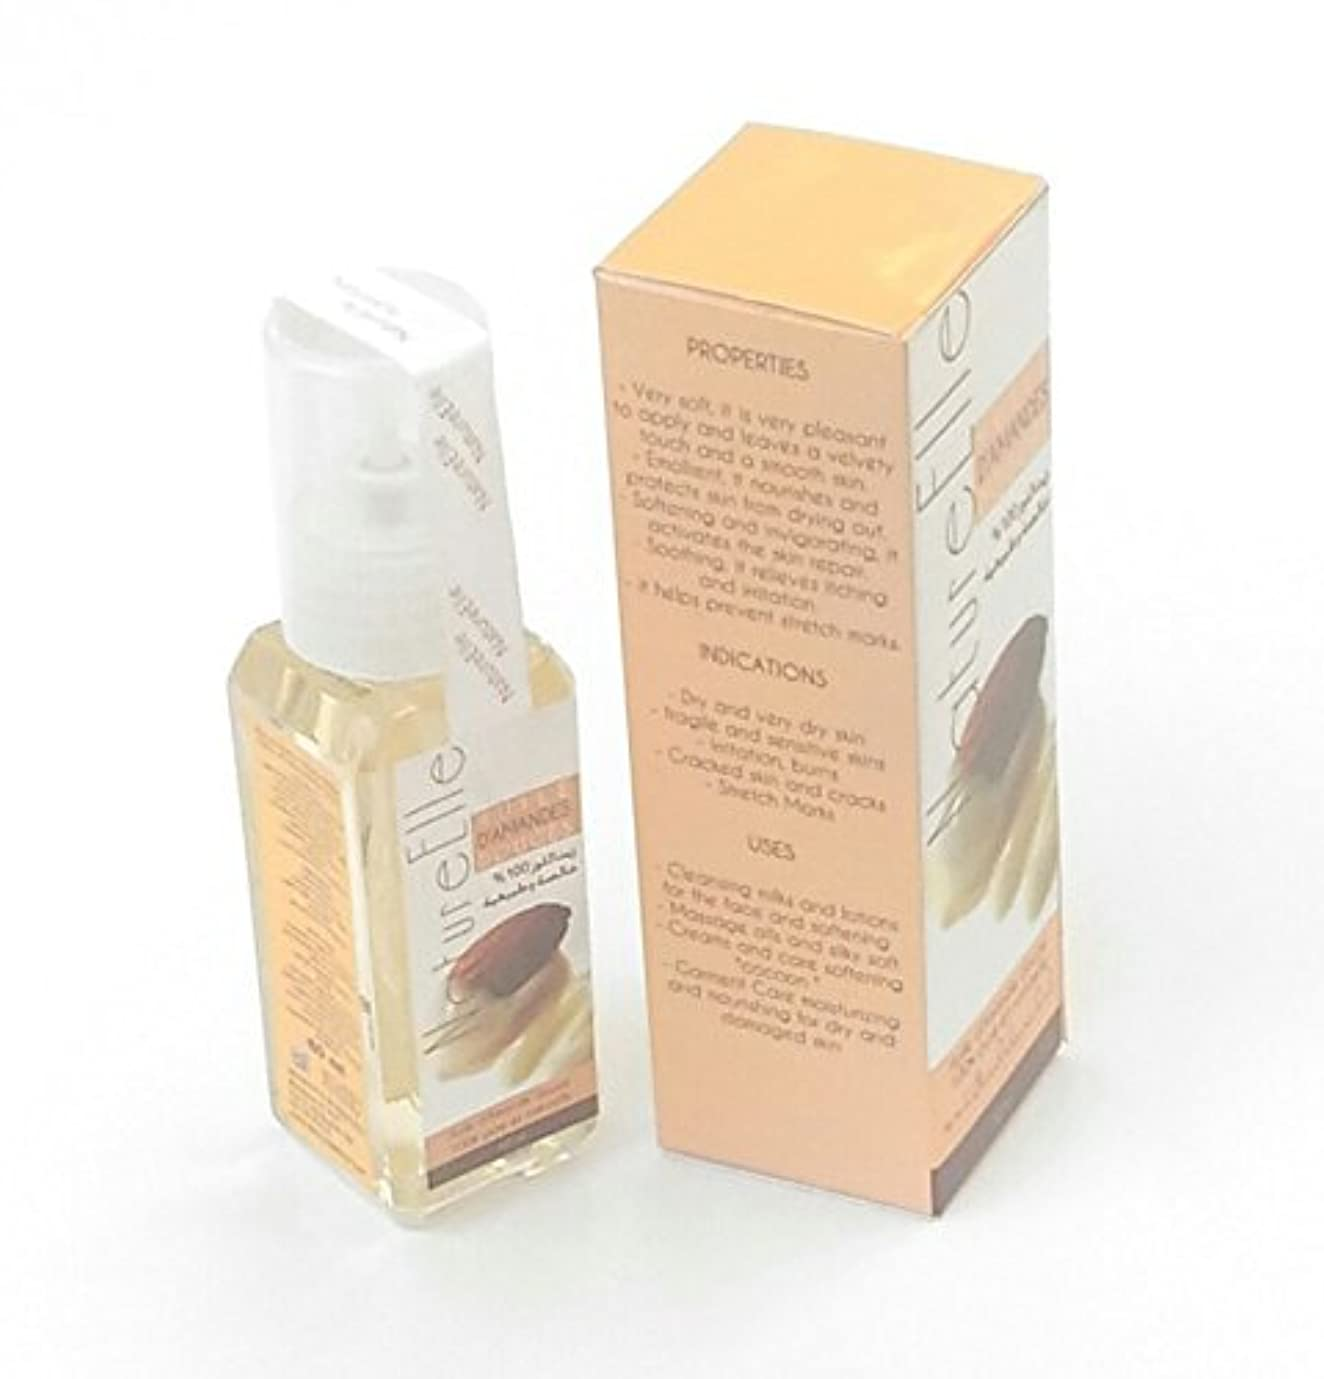 残り物遅れ準備したNatureElle The Pure Sweet Almond Oil 100% Pure and Natural - Delivery Express in three working days - Shipping traced - 60 ml [並行輸入品]